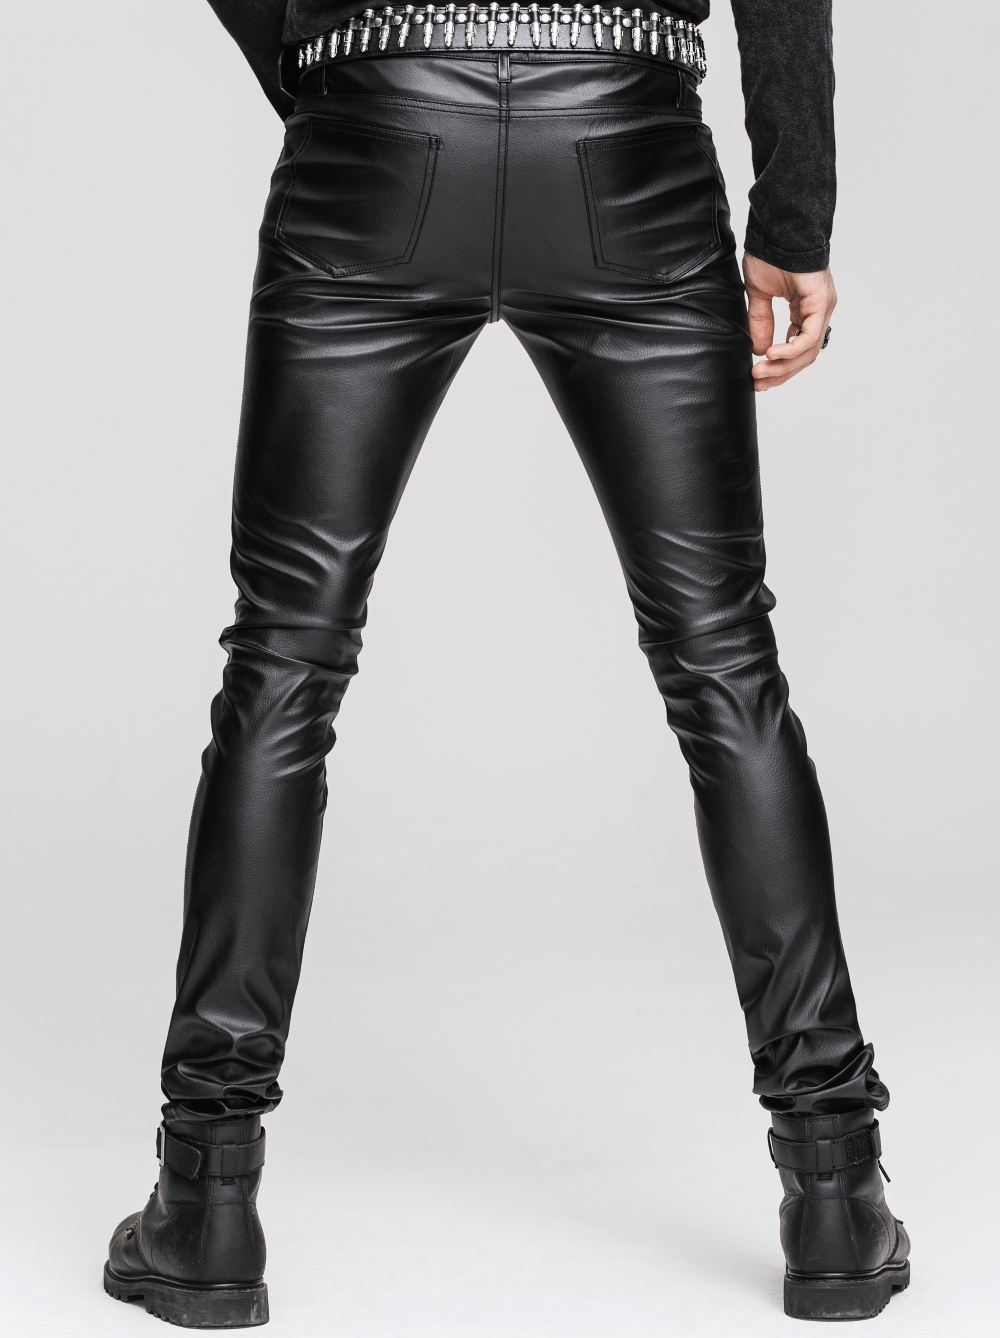 pantalon gothique homme look cuir noir devil fashion coupe pr s du corps